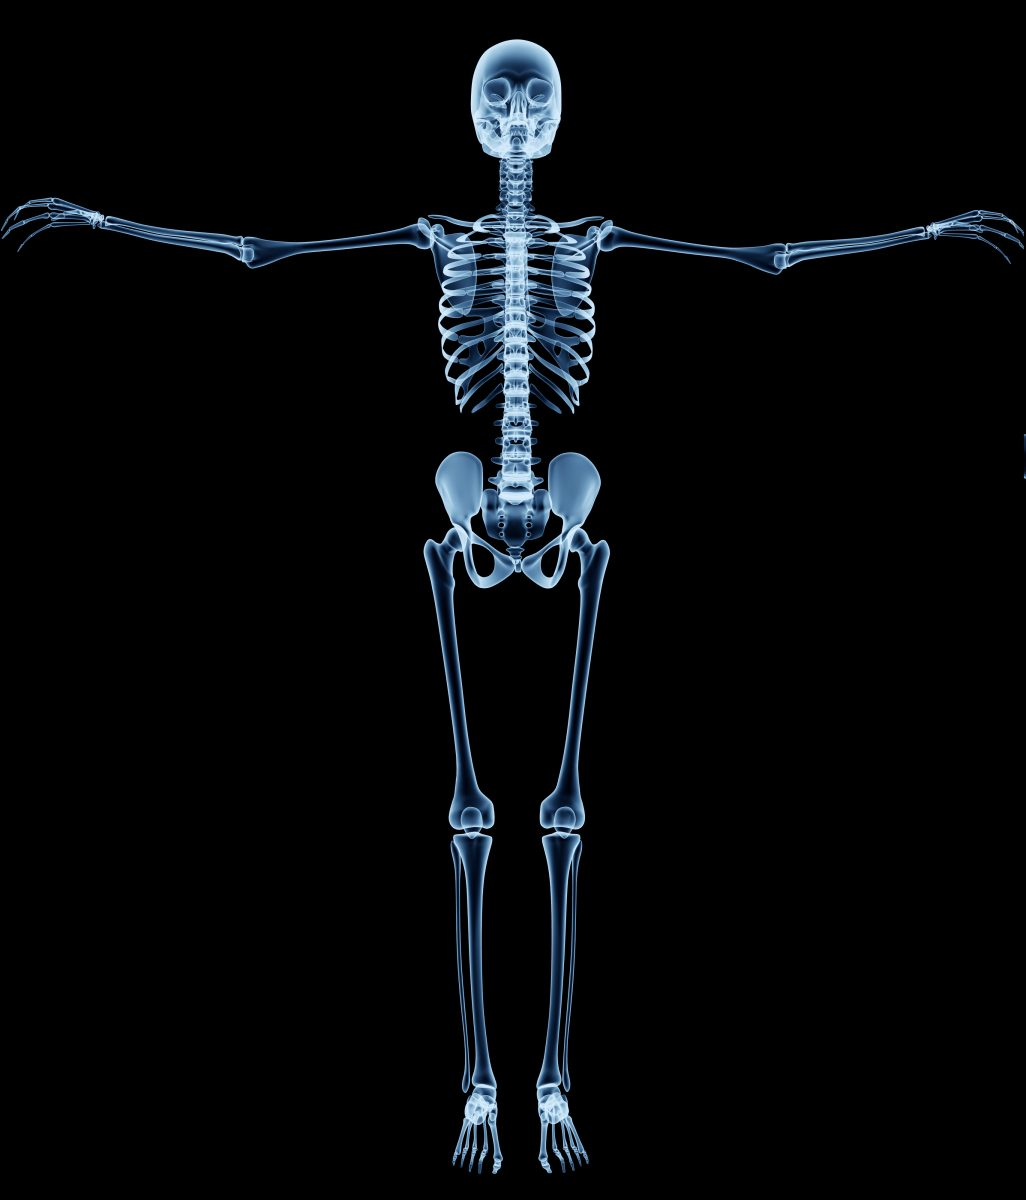 Diabetes Therapy Rosiglitazone Found to Enhance Fat Accumulation in Bones – Exercise Can Partially Offset The Effect